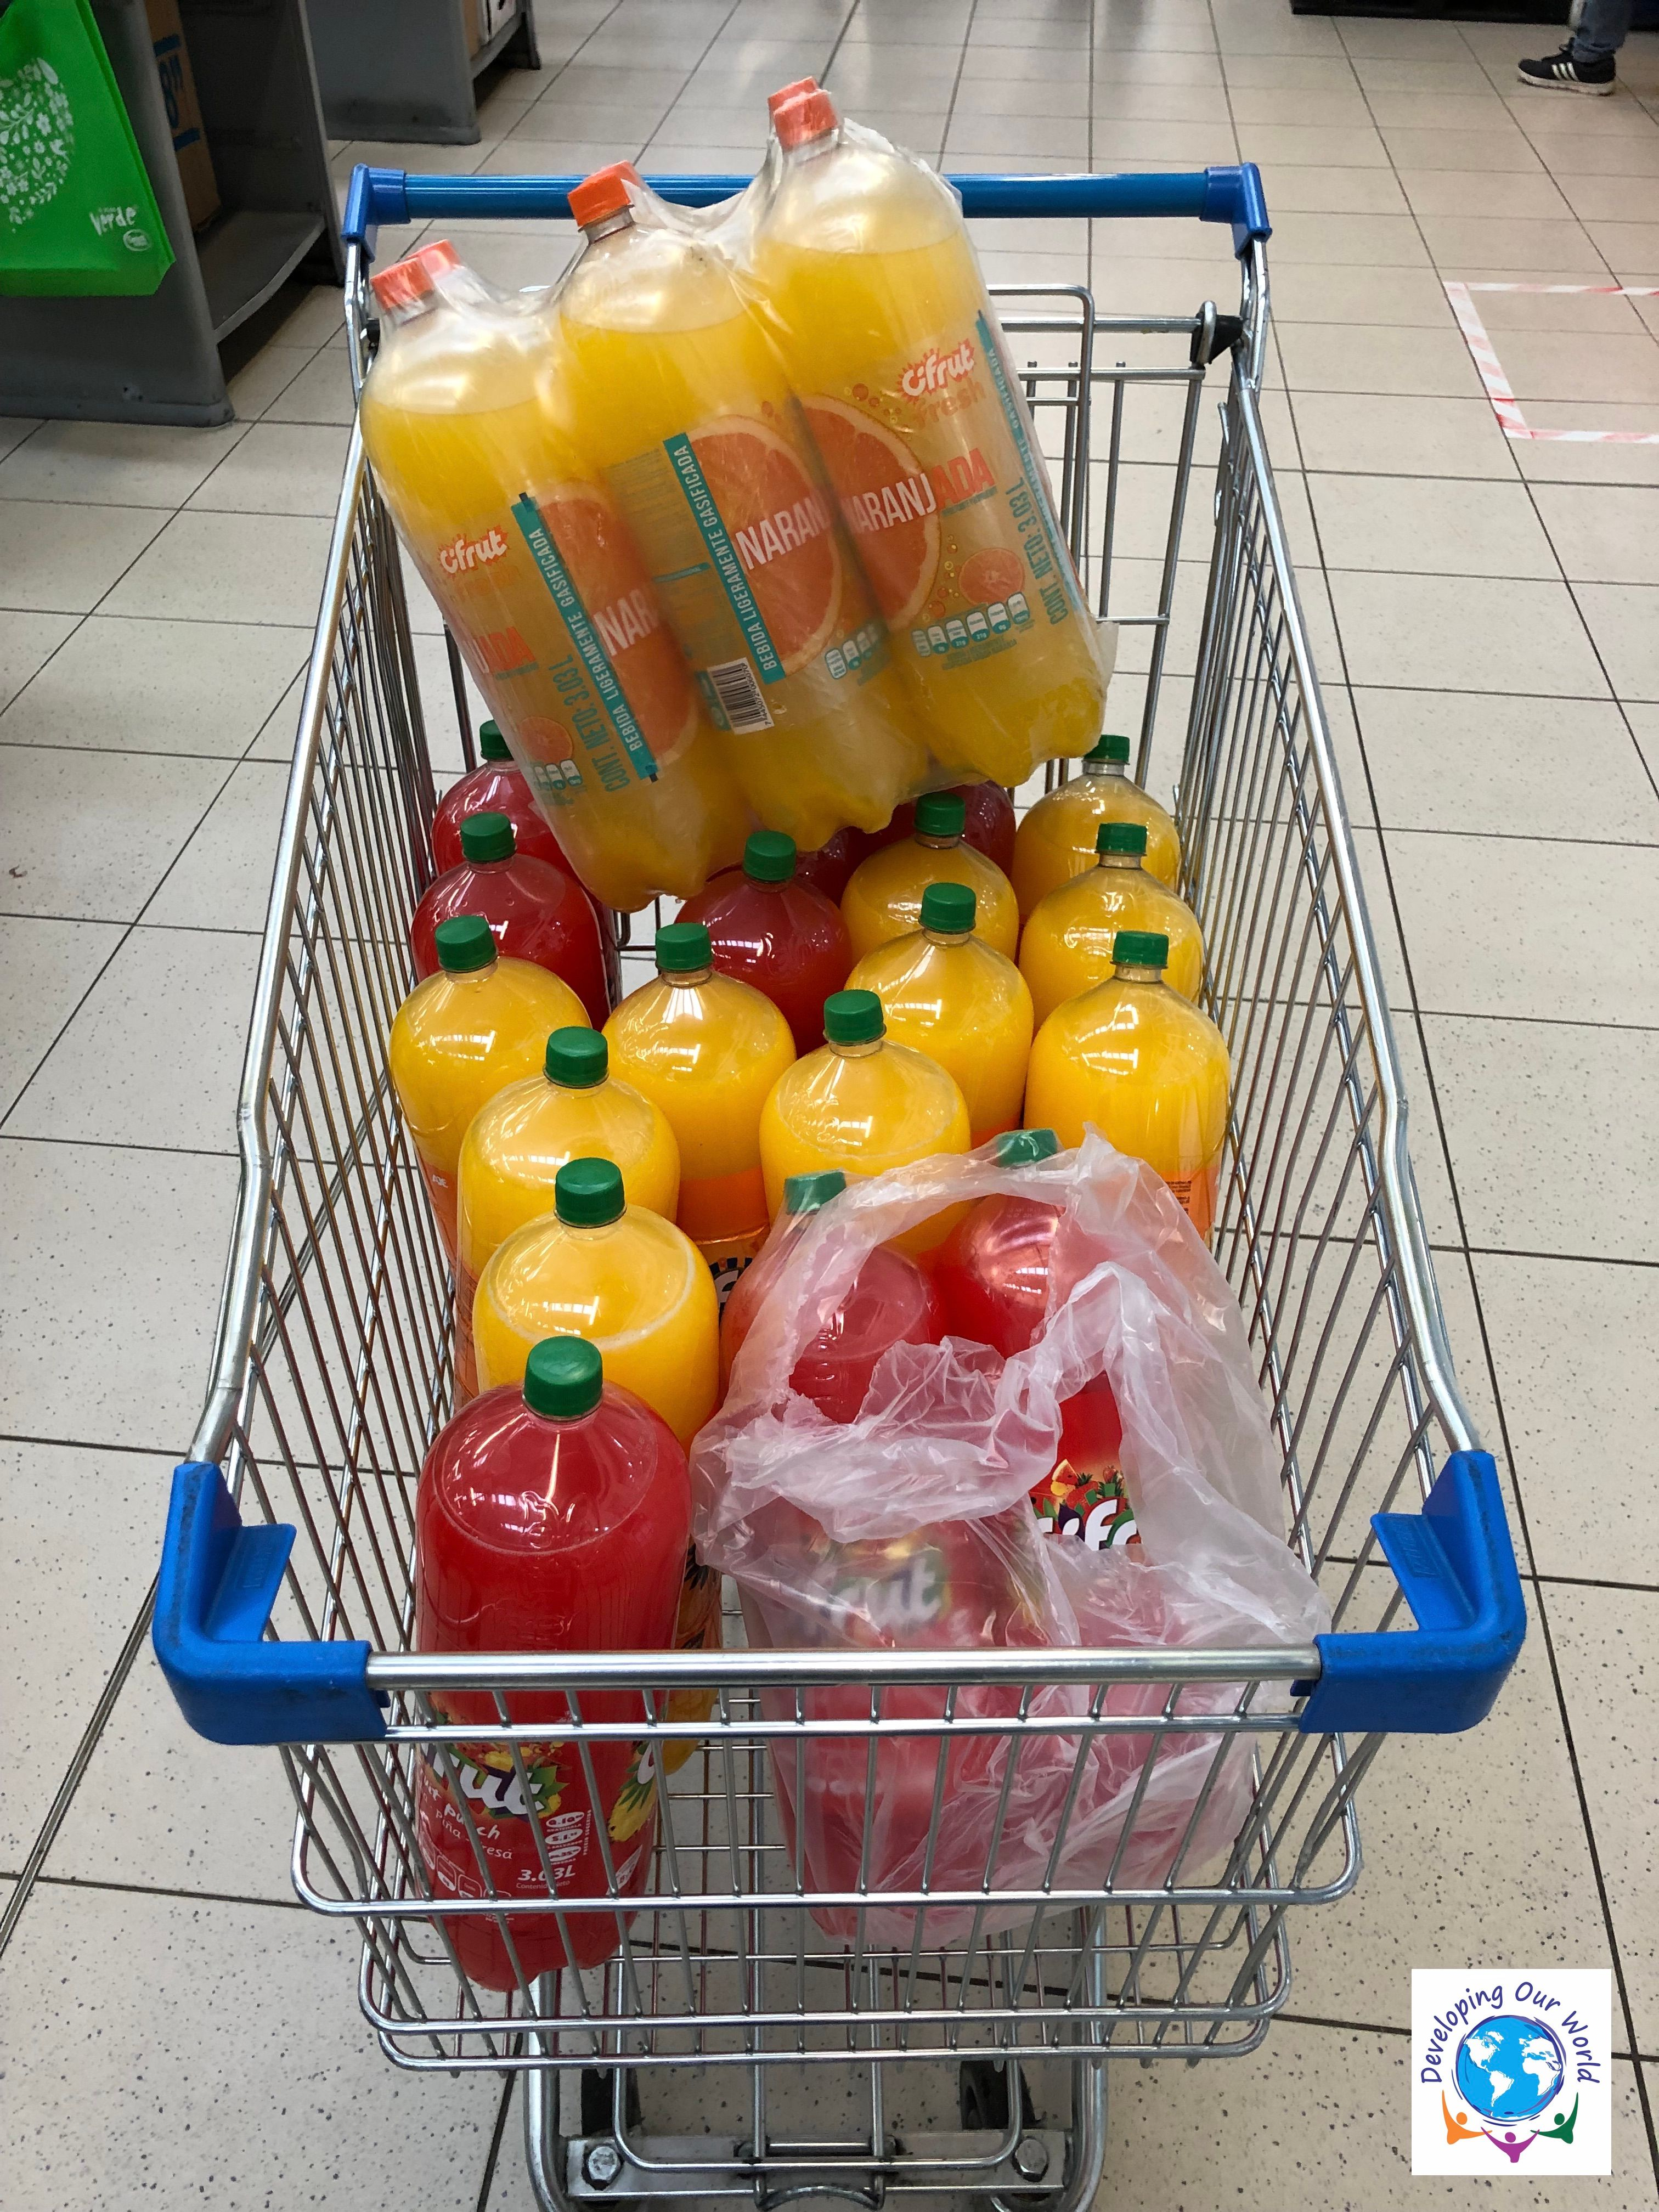 79 liters of orange and strawberry